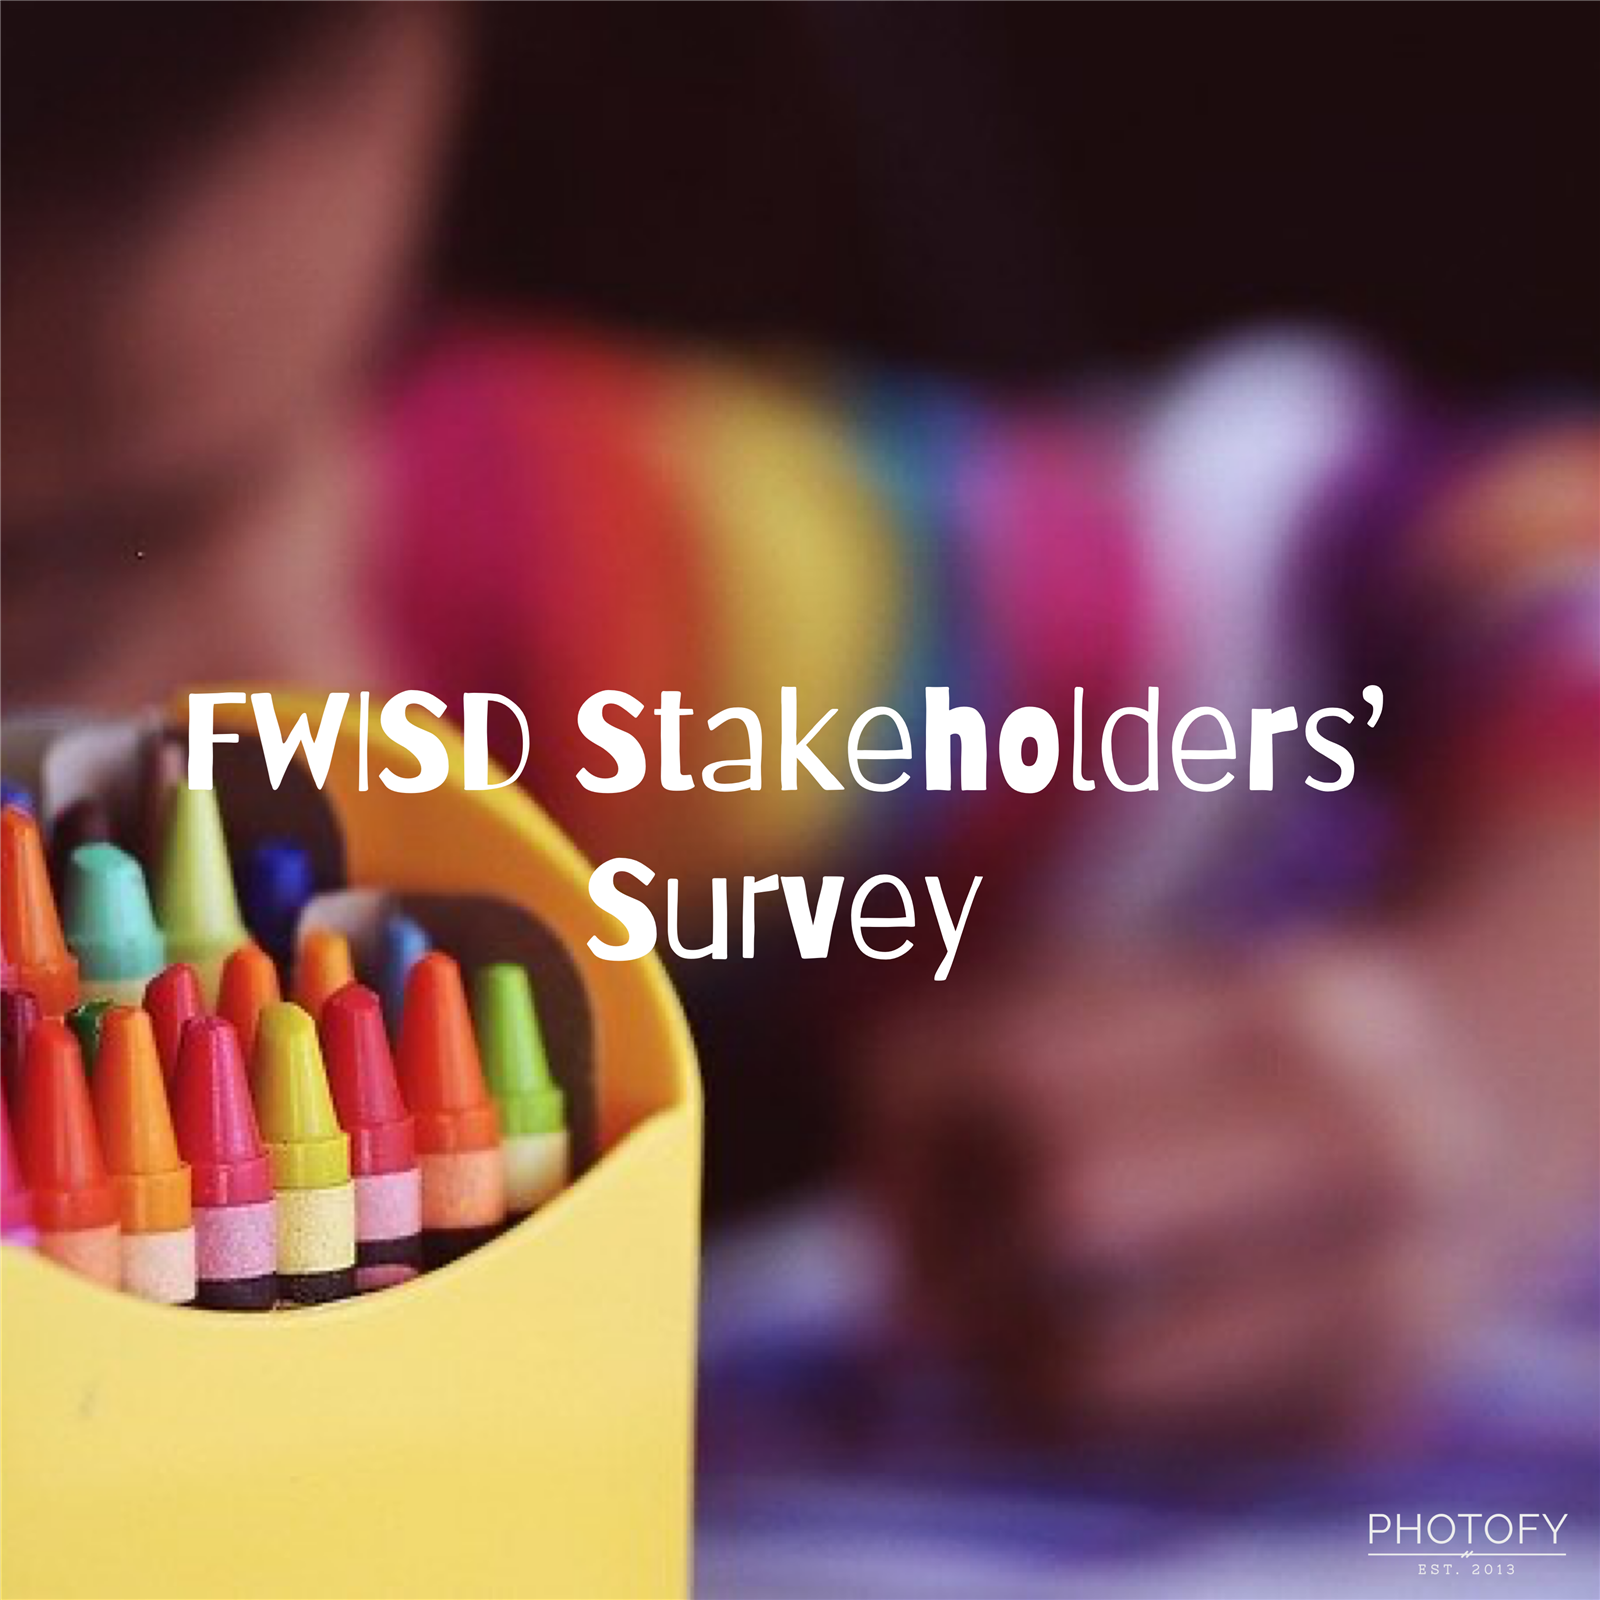 Stakeholders' Survey